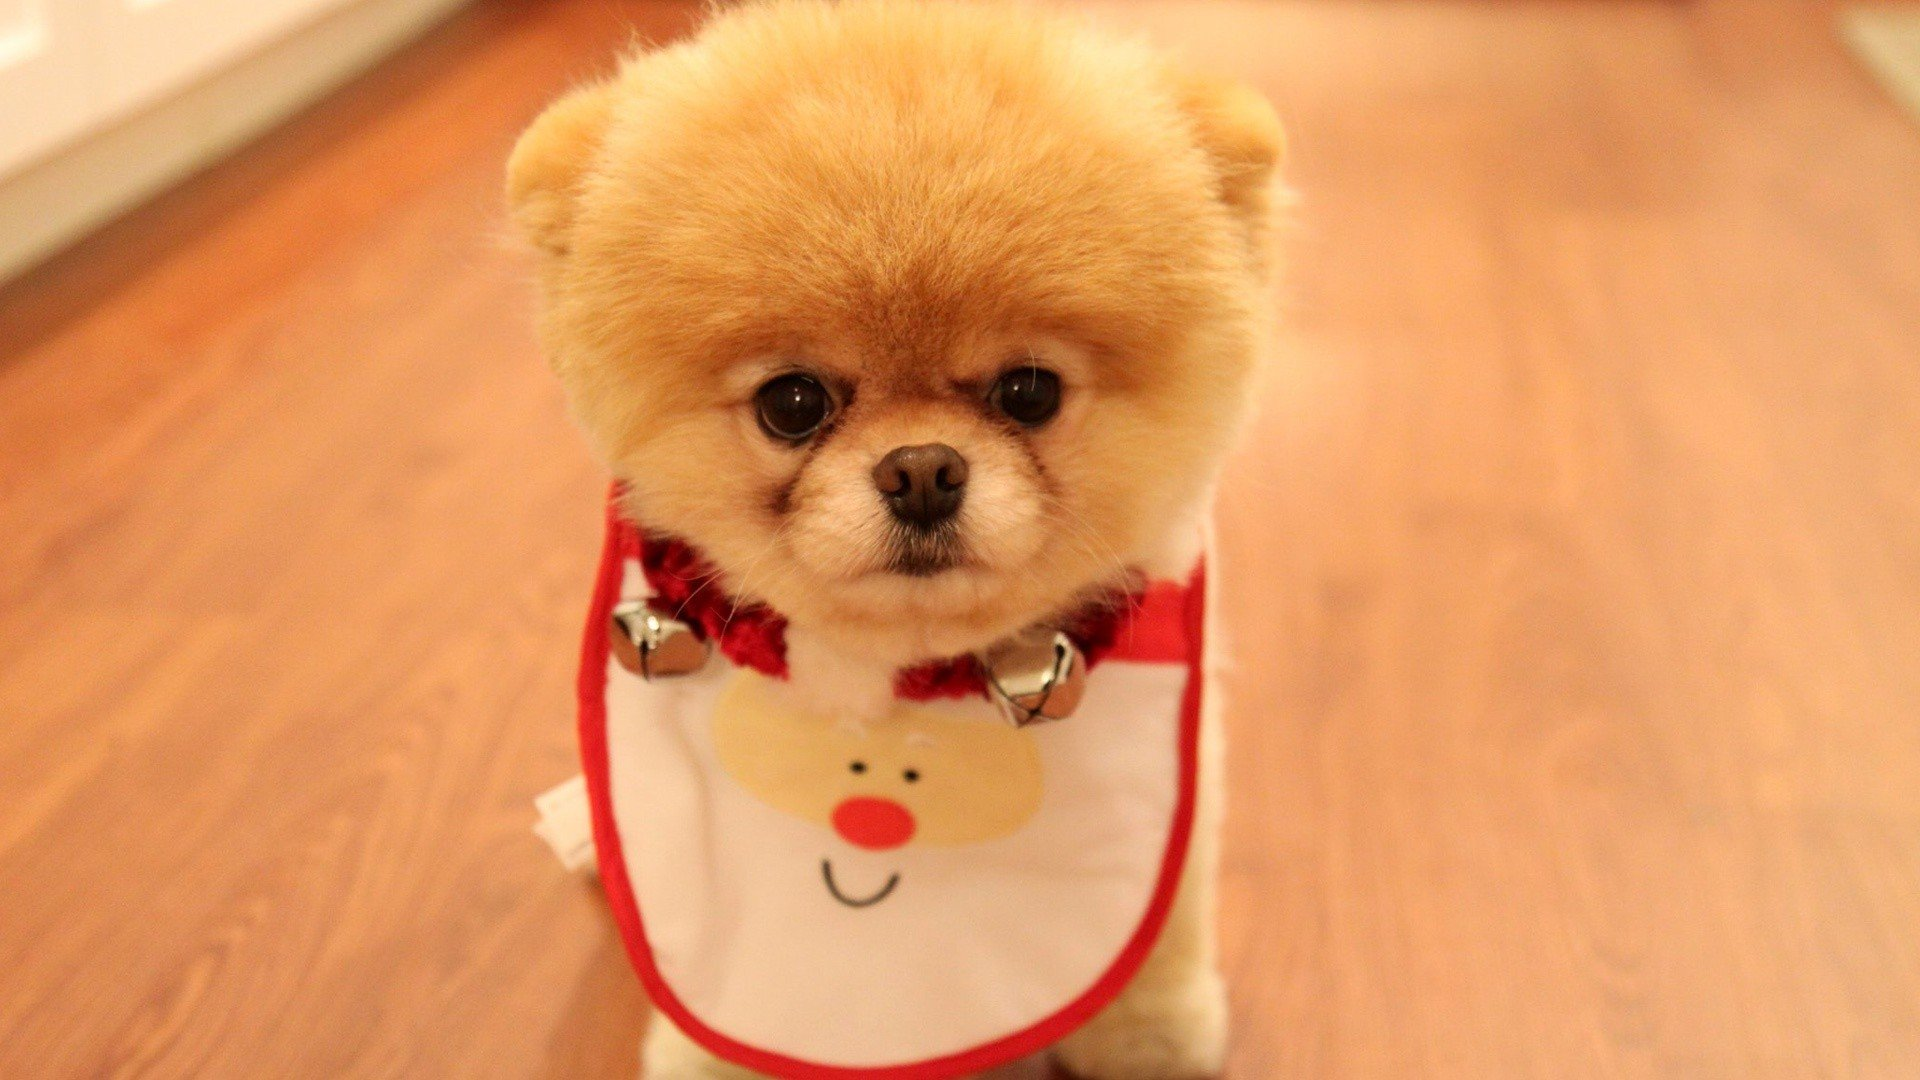 Cute Puppy Wallpapers Downloads Download Wallpapers Dogs Chow Chow